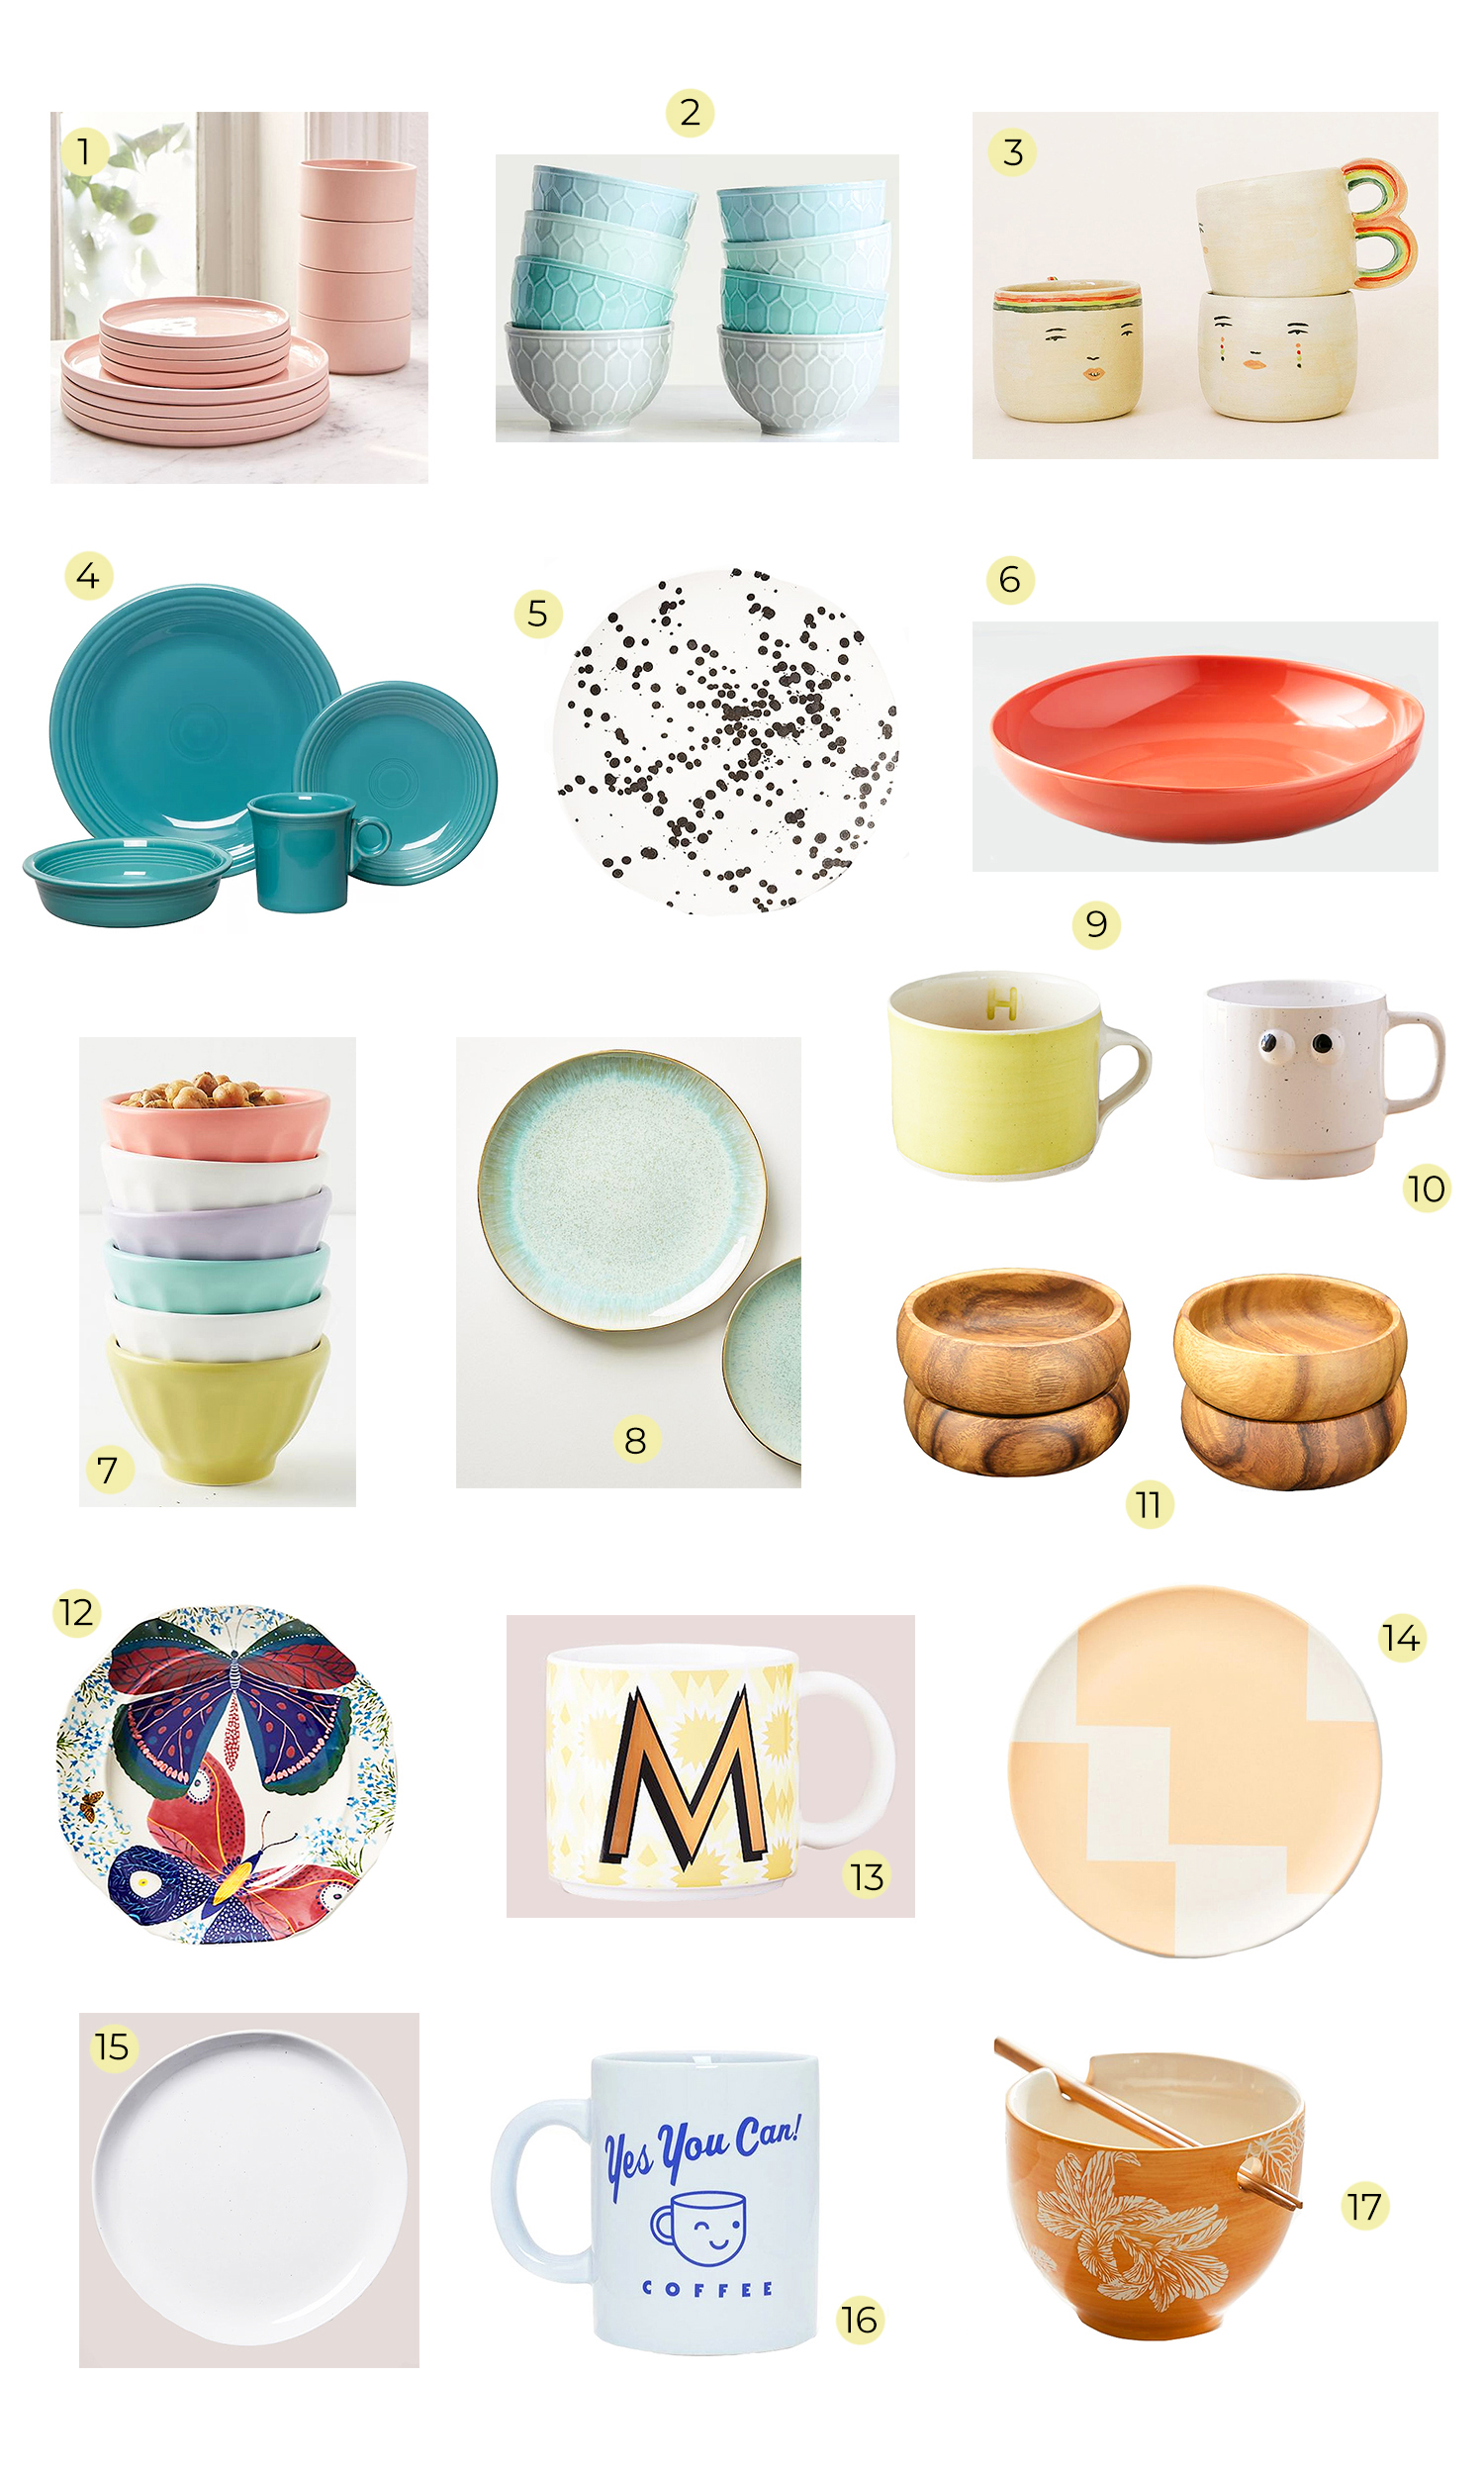 Our Favorite Dinnerware: Plates, Bowls, & Mugs!